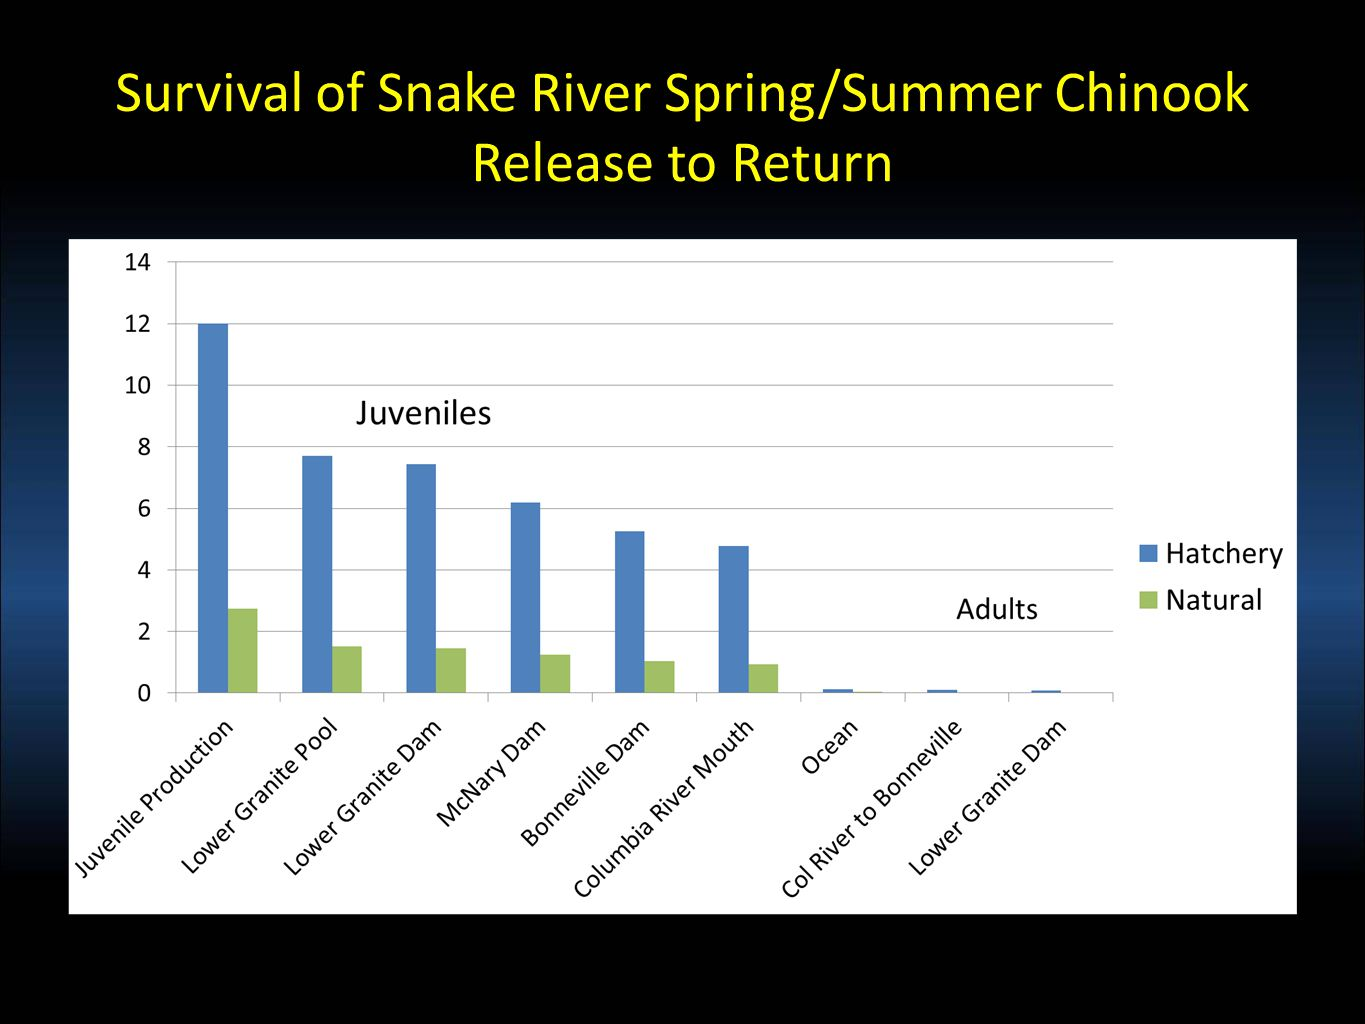 Survival of Snake River Spring/Summer Chinook Release to Return